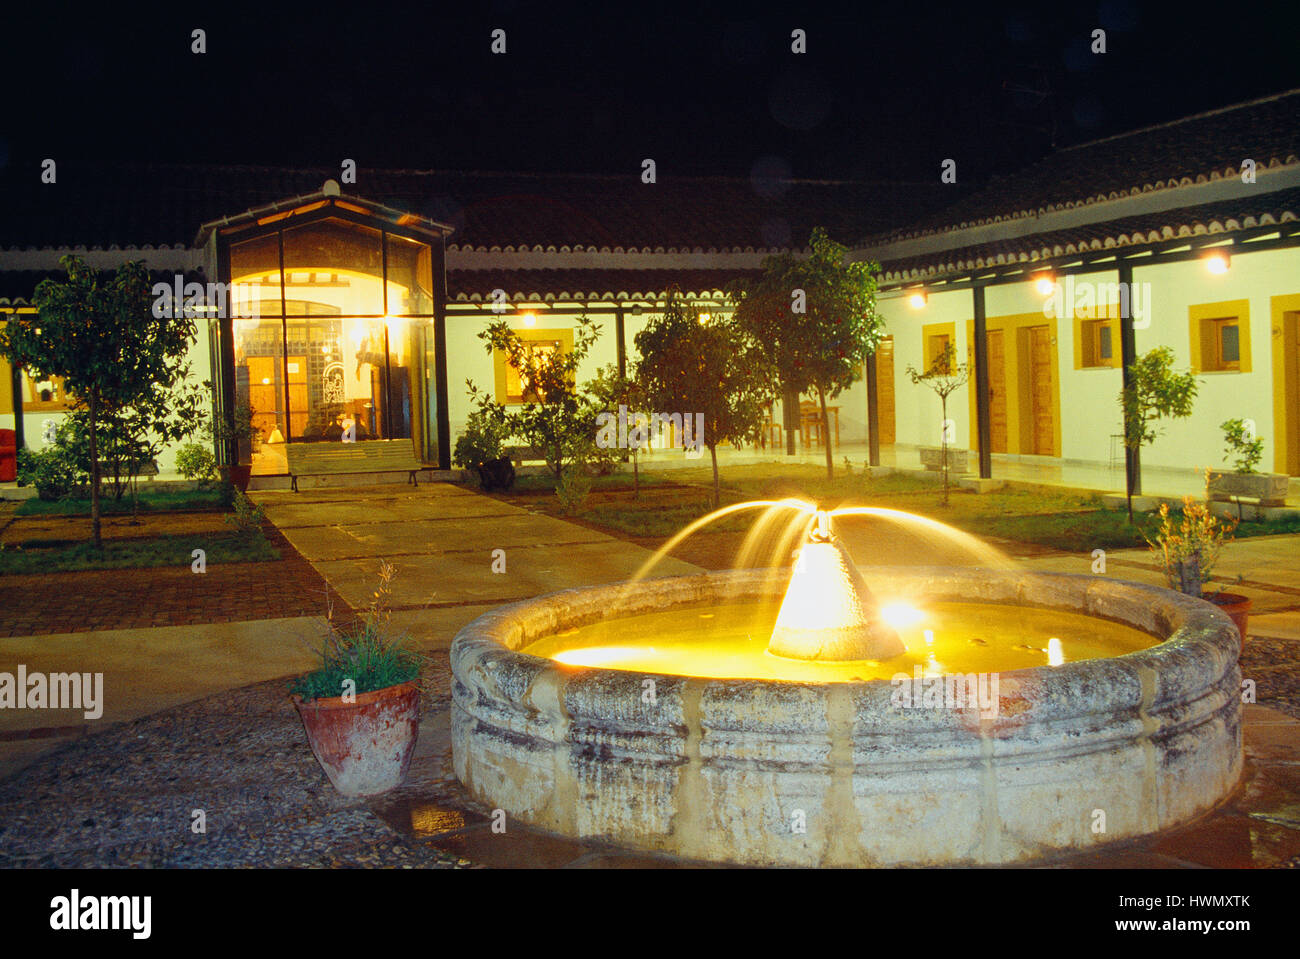 Courtyard of rural hotel, night view. Baena, Jaen province, Andalucia, Spain. - Stock Image